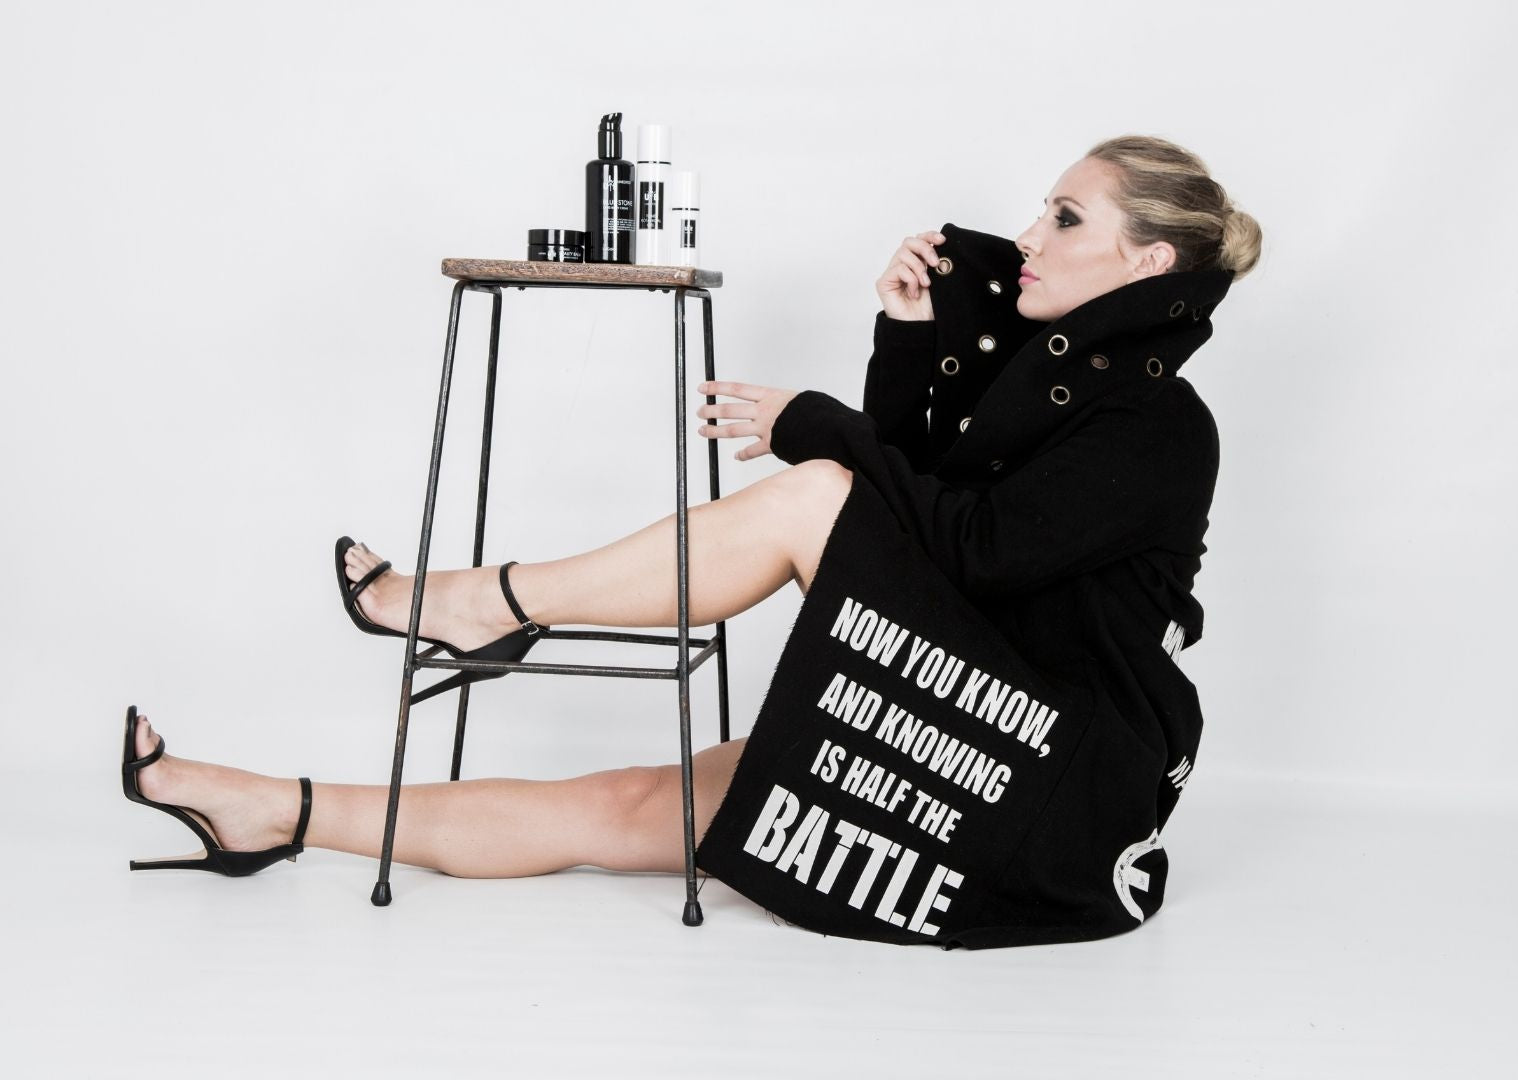 Kristen beauty photoshoot with a jacket that reads now you know